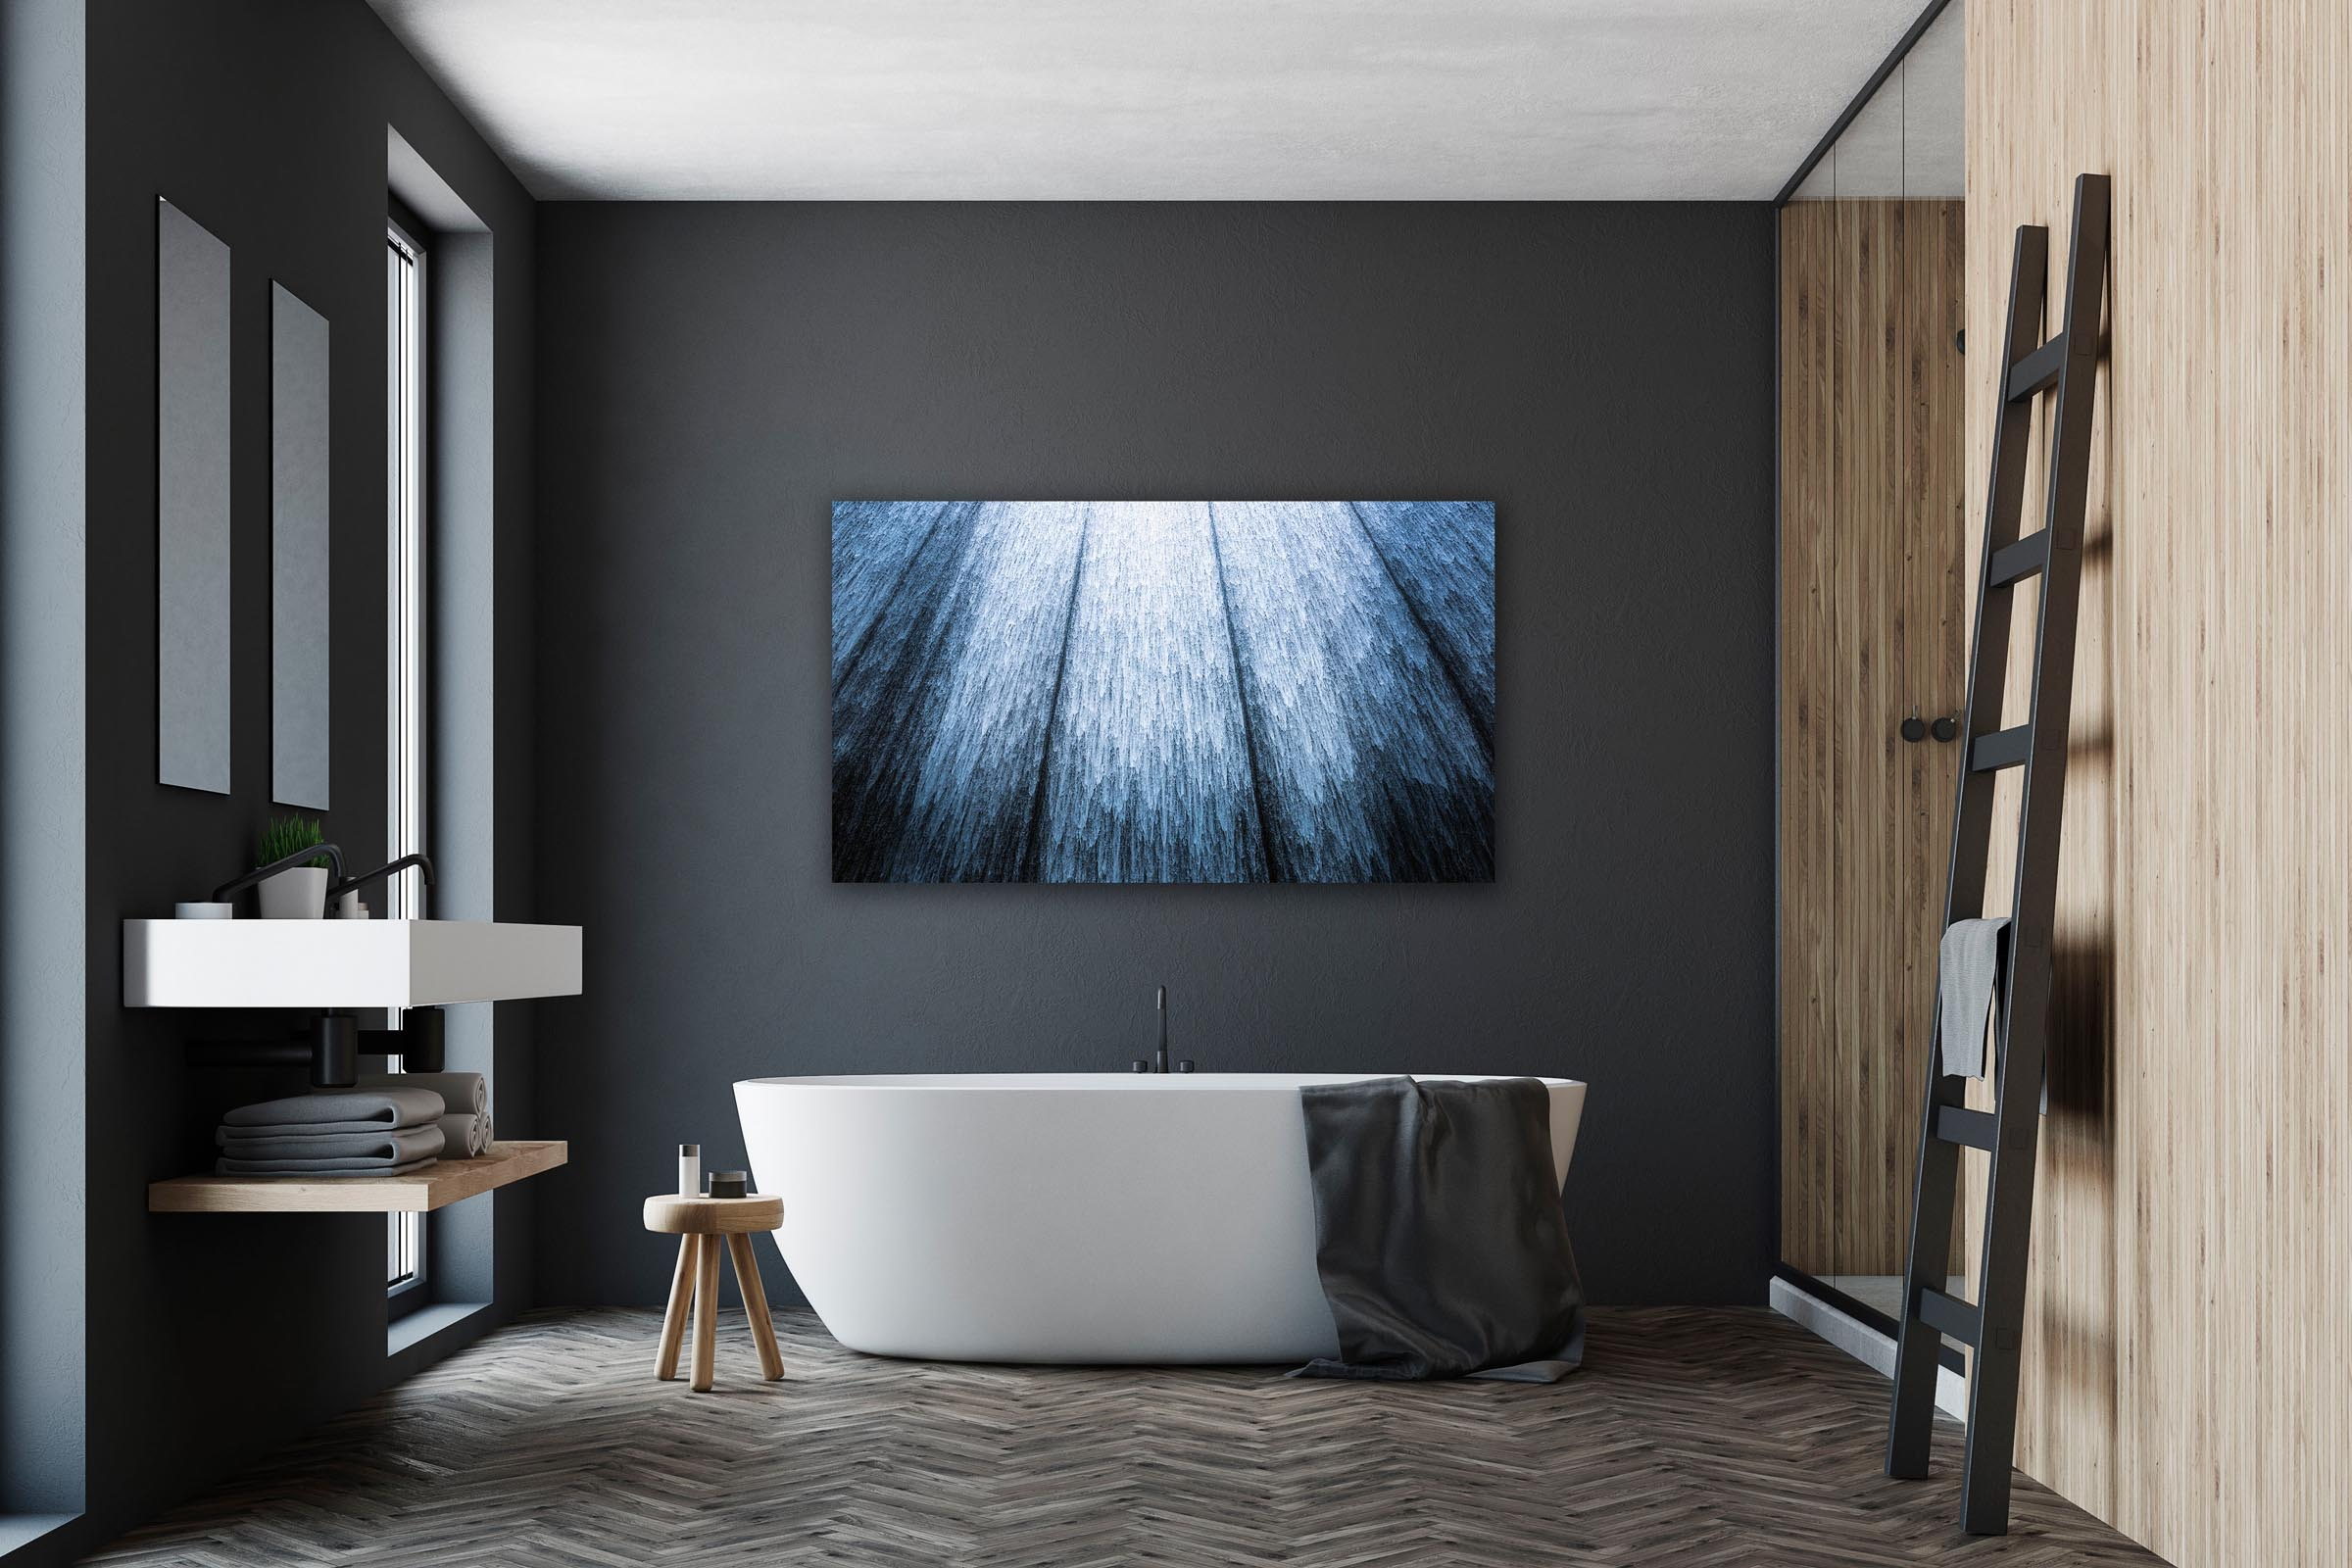 Wall art of Waterwall in Houston, Texas by Brent Goldman Photography